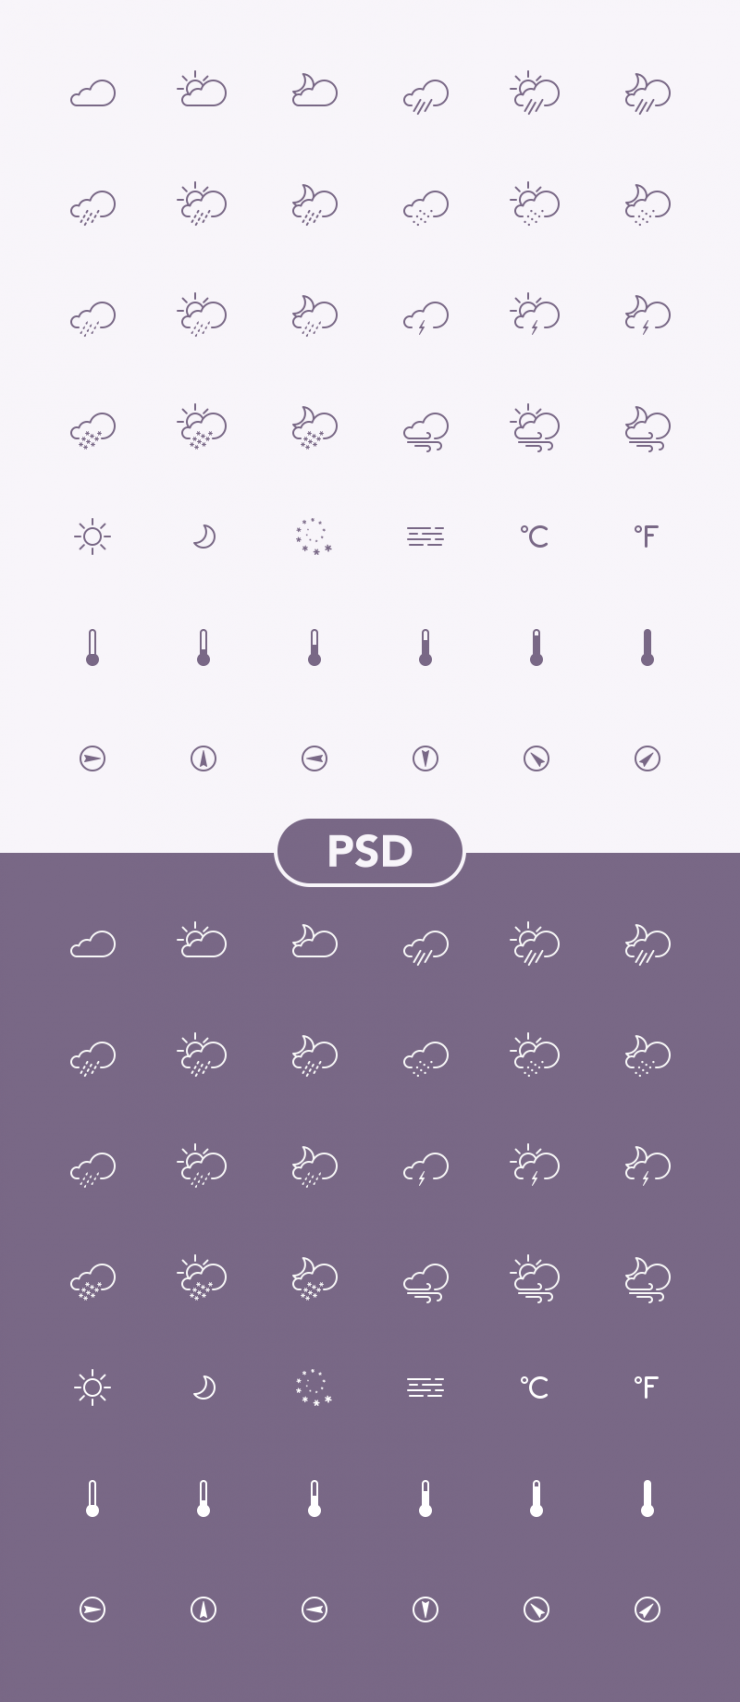 Line Weather Icons PSD Set Web Resources, Web Elements, weather, unique, Sun, Stylish, Snow, small, Simple, set. psd kit, Resources, raining, Rain, Quality, PSD Set, PSD Icons, PSD, pack, outline, original, new, moon, Modern, line, Icons, Icon PSD, Icon, Fresh, Freebie, Free PSD, Free Icons, Free Icon, Elements, Download, detailed, Design, Creative, Cloud, Clean,